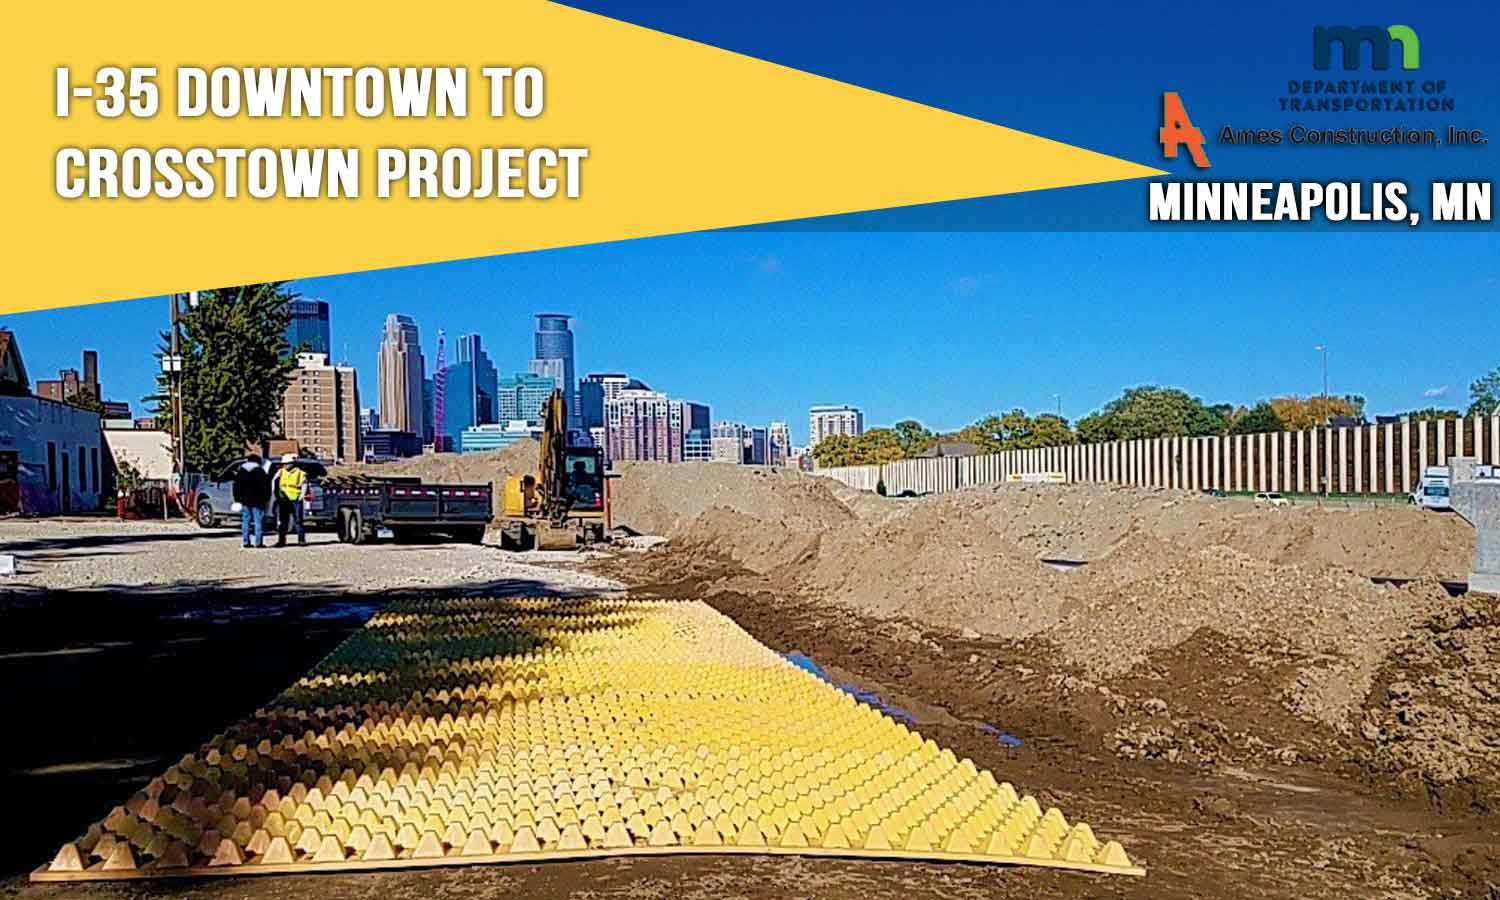 FODS_ConstructionEntrance_ConstructionExit_trackingPads_temporaryConstructionEntrance_temporaryConstructionEntrance_riprap_RockConstructionEntrance_I-35DowntowntoCrosstownProject_.jpg